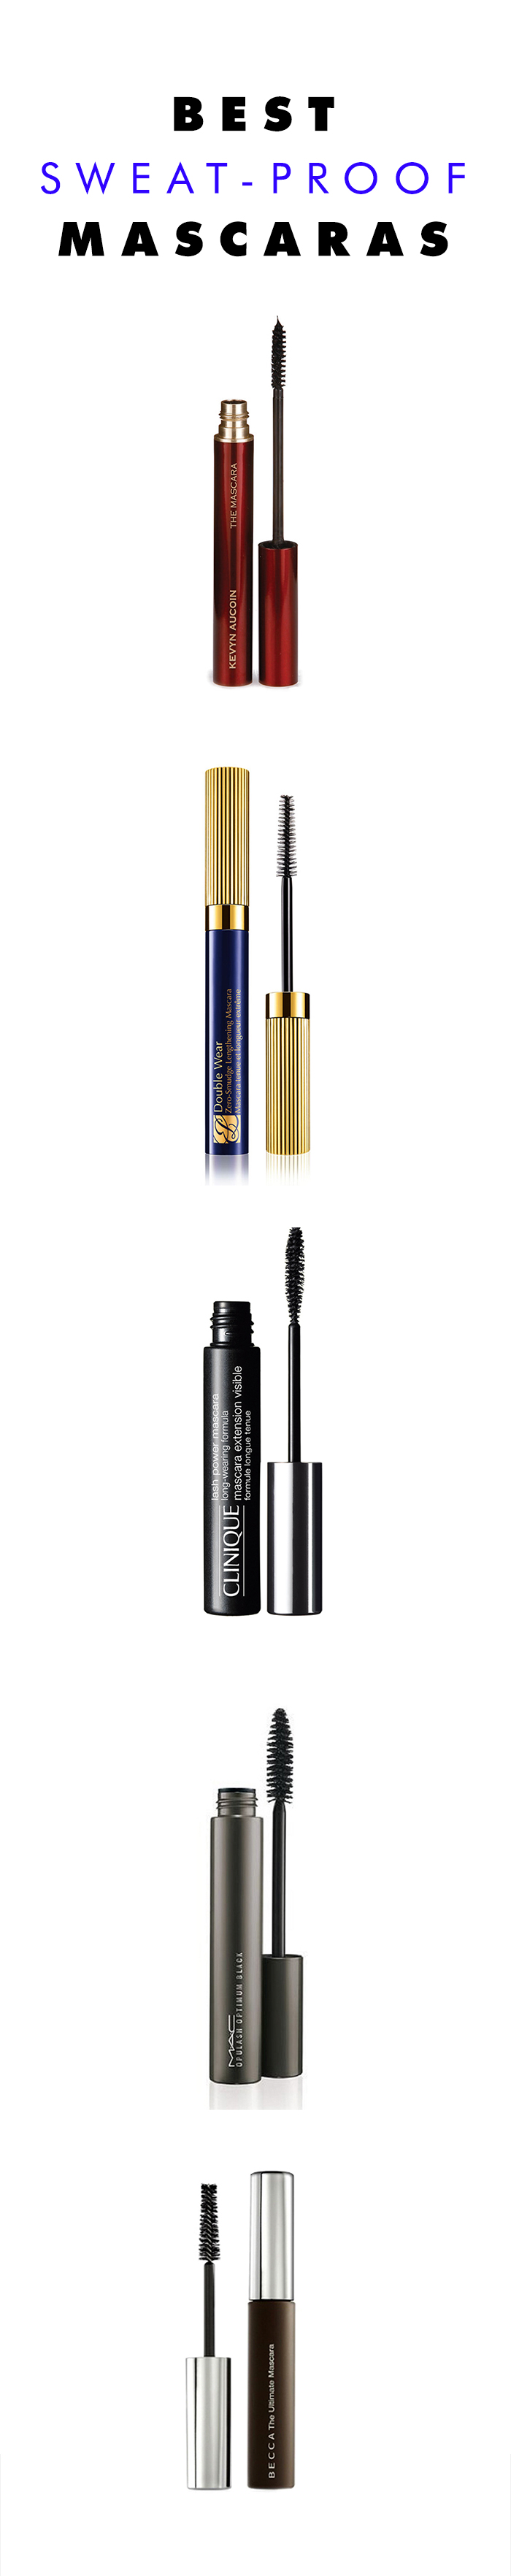 8 Tubing Mascaras That Work Just as Well as Lash